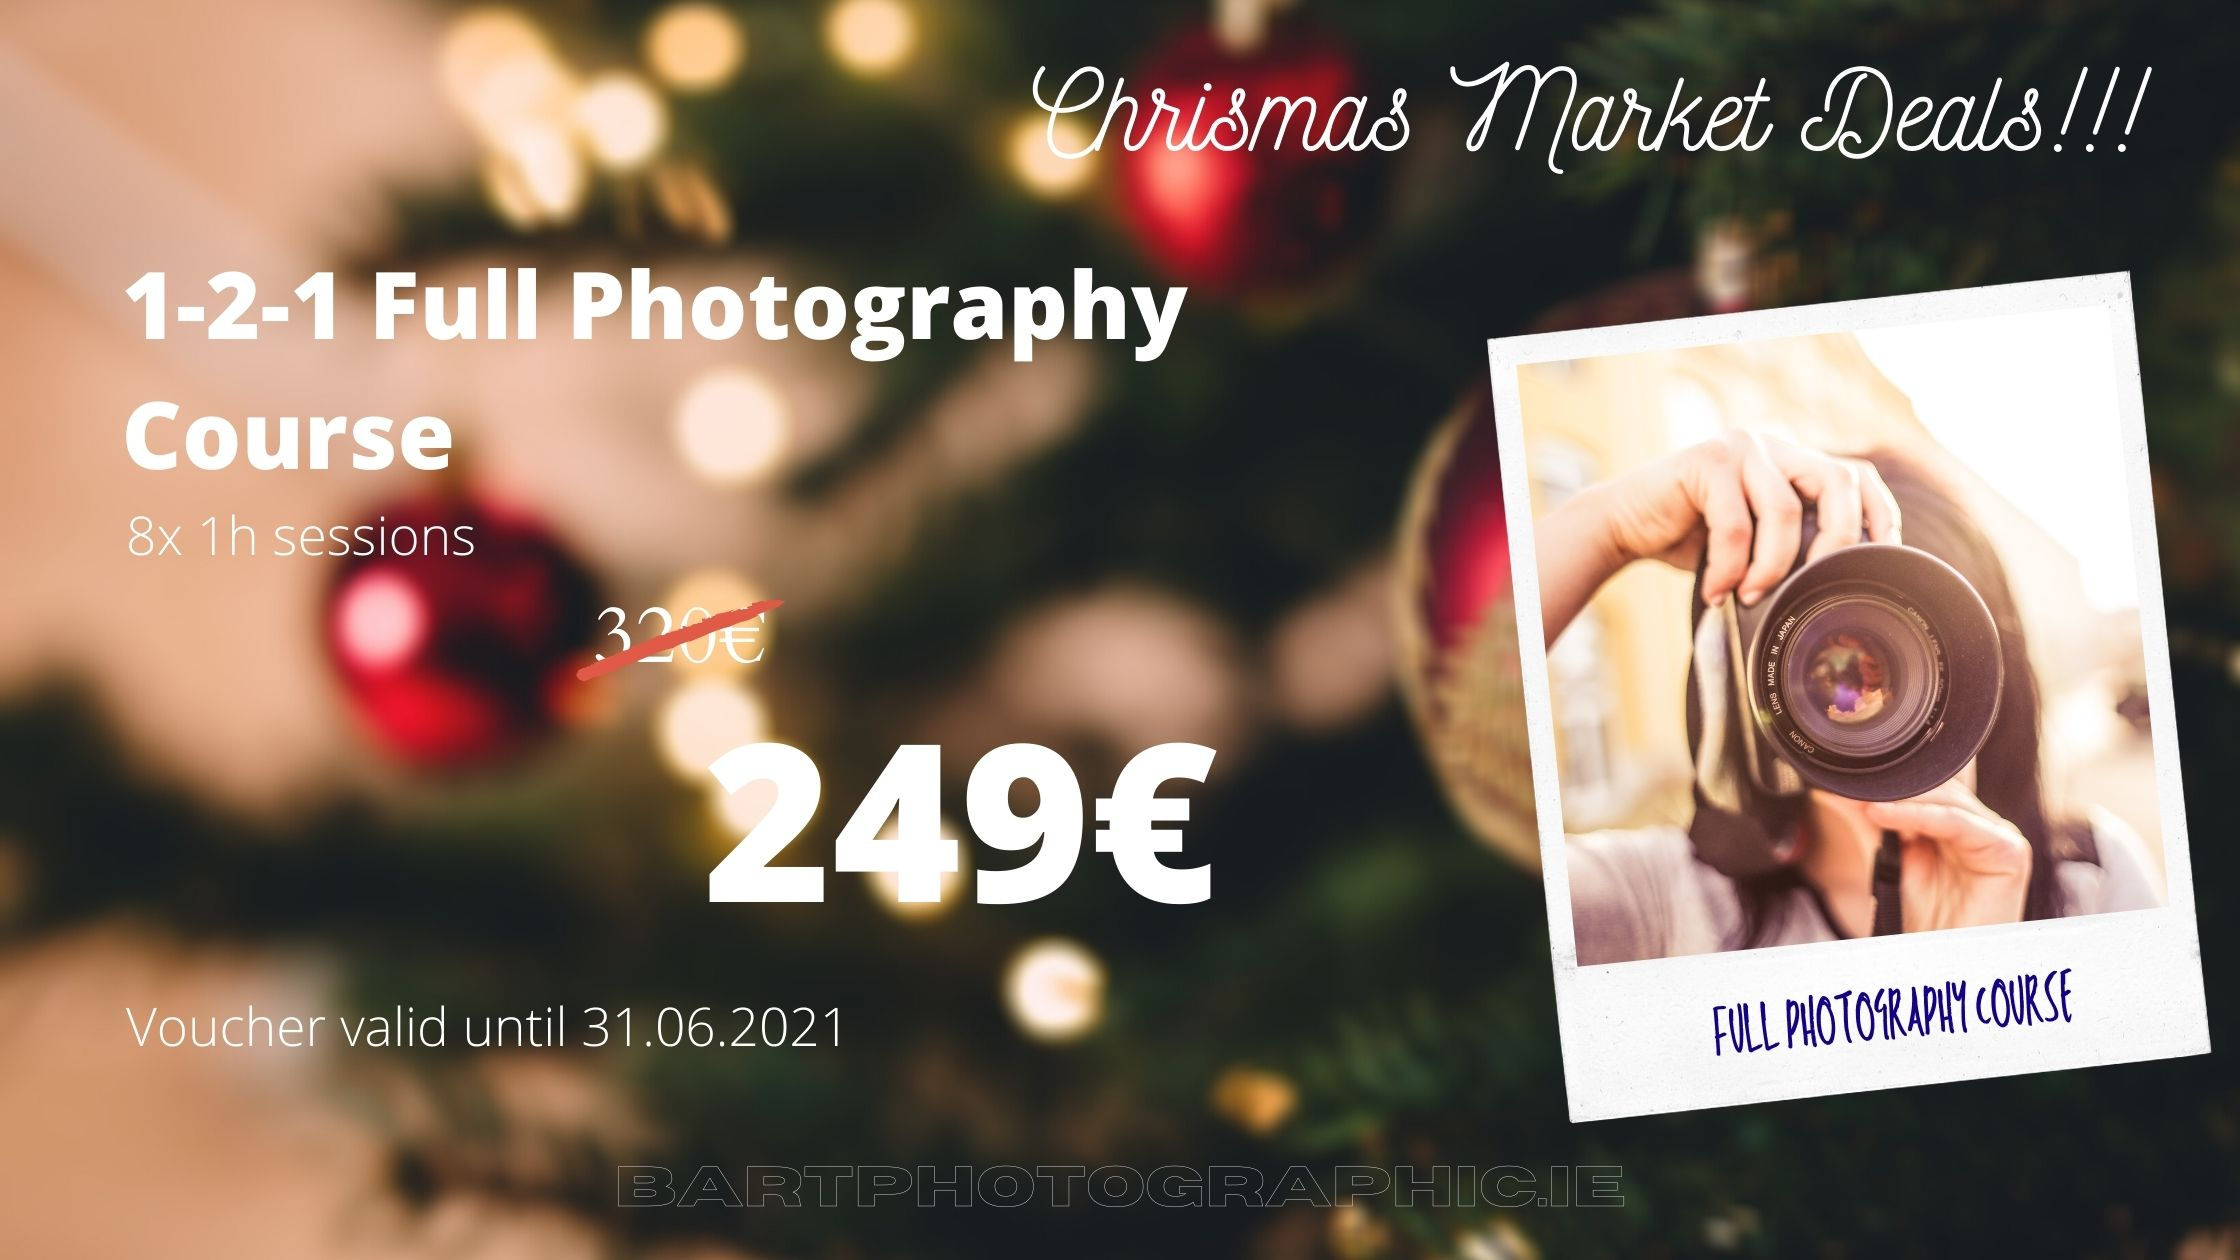 1-2-1 Full Photography Course249€